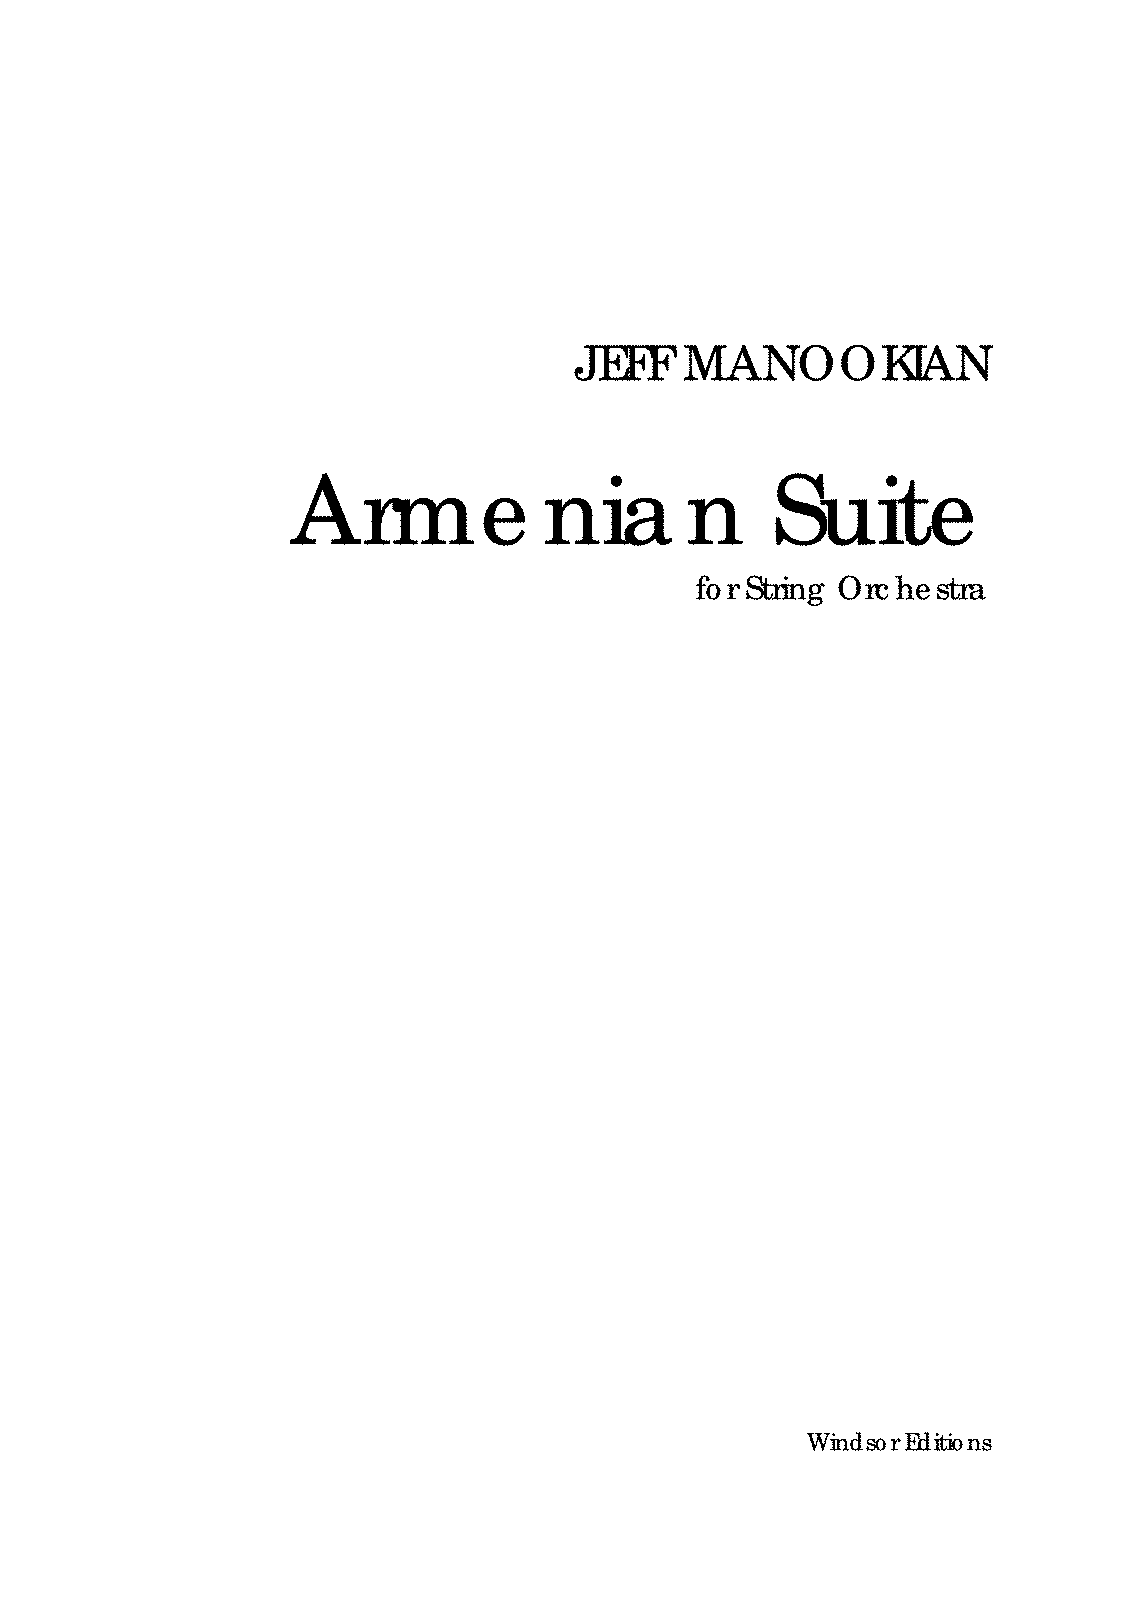 PMLP118562-ARMENIAN SUITE Score 1st, 2nd and 3rd movements-.pdf